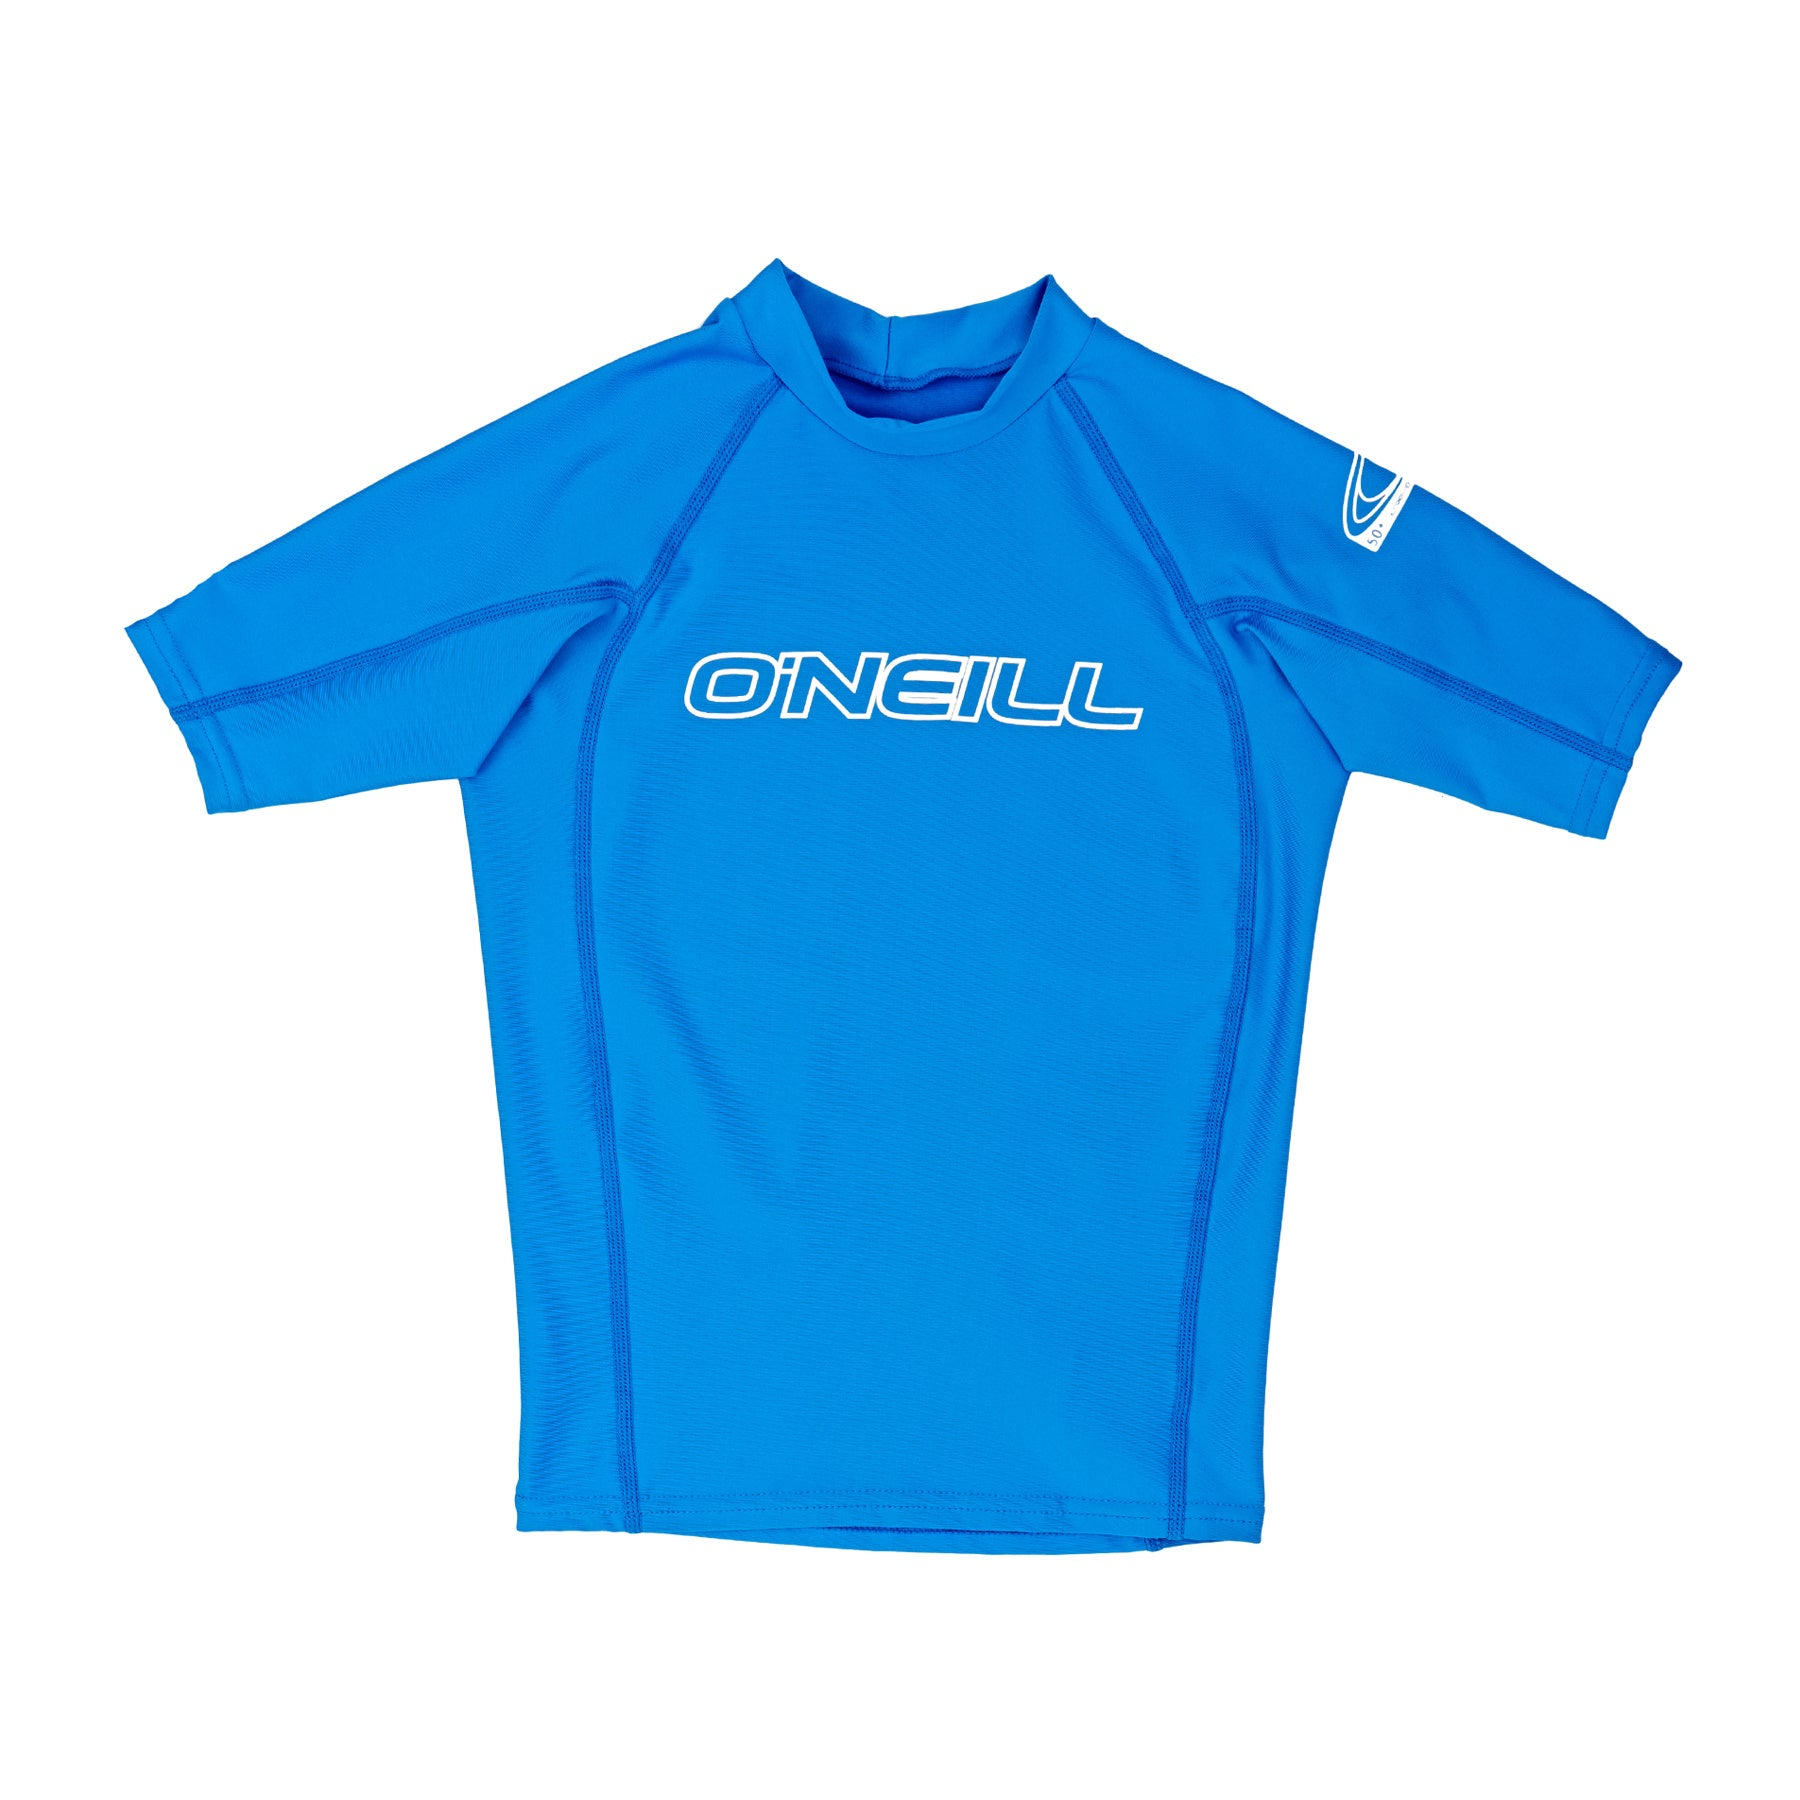 O Neill Basic Skins Short Sleeve Crew Boys Rash Vest - Brite Blue